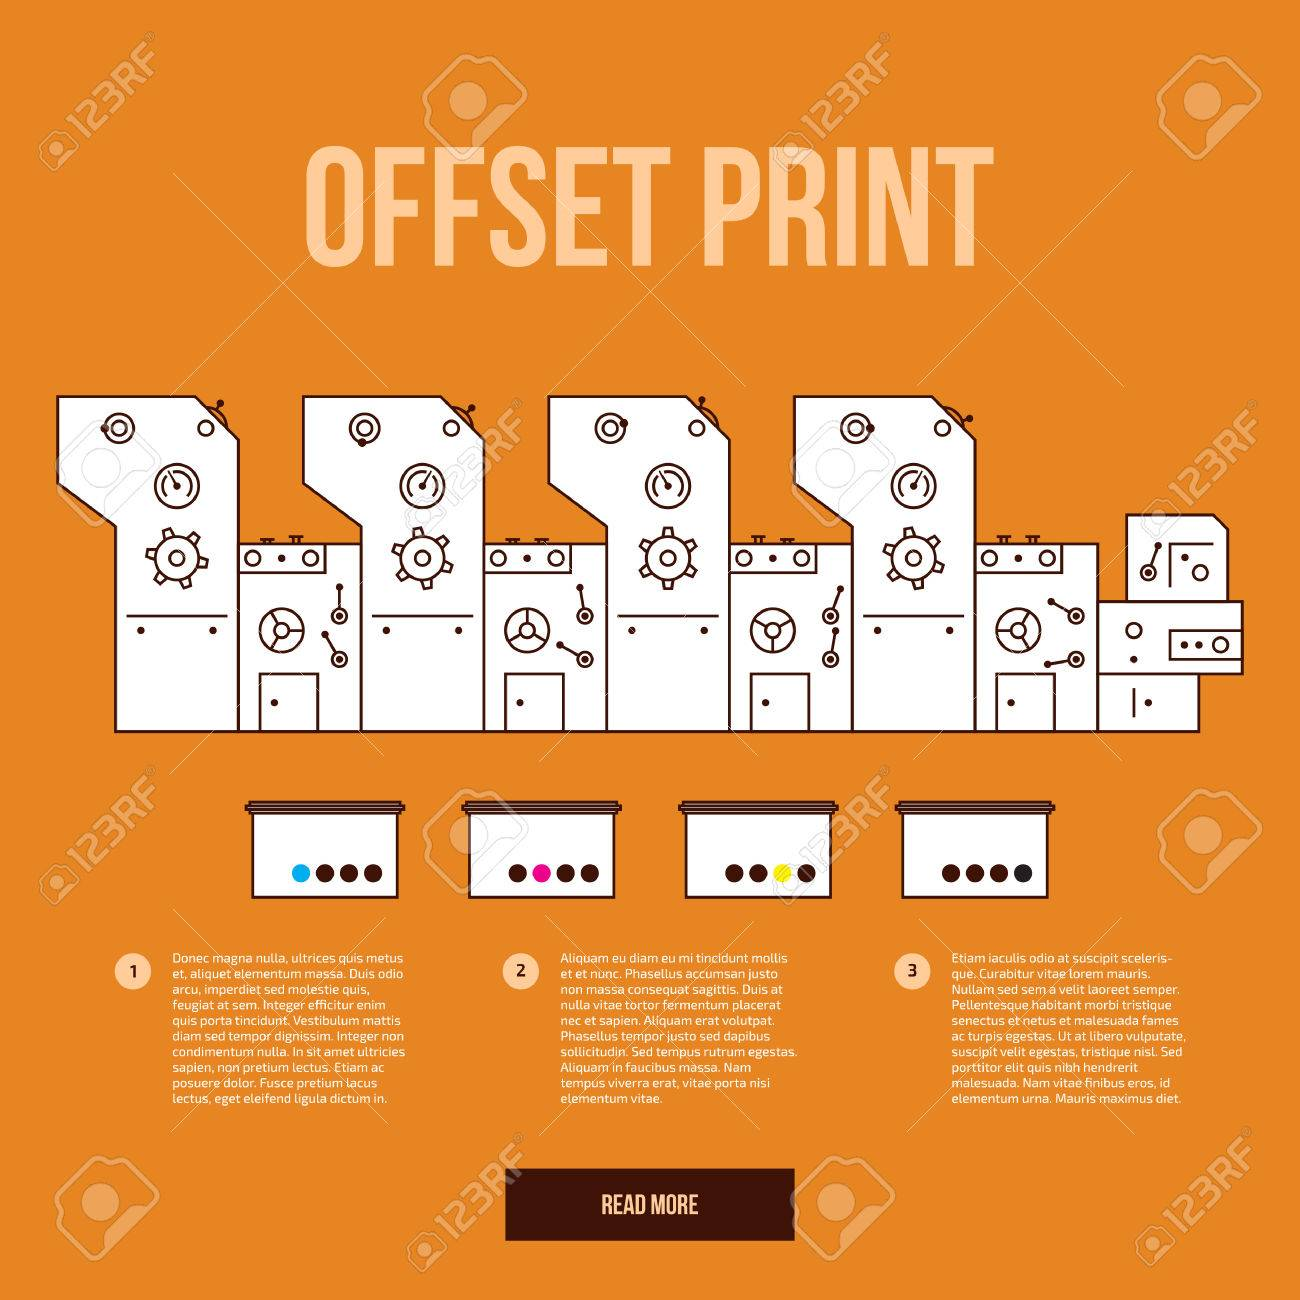 Advertisement Offset Machine Concept Color Paint For Print Printing Diagram Press Liquid Cyan Magenta Yellow